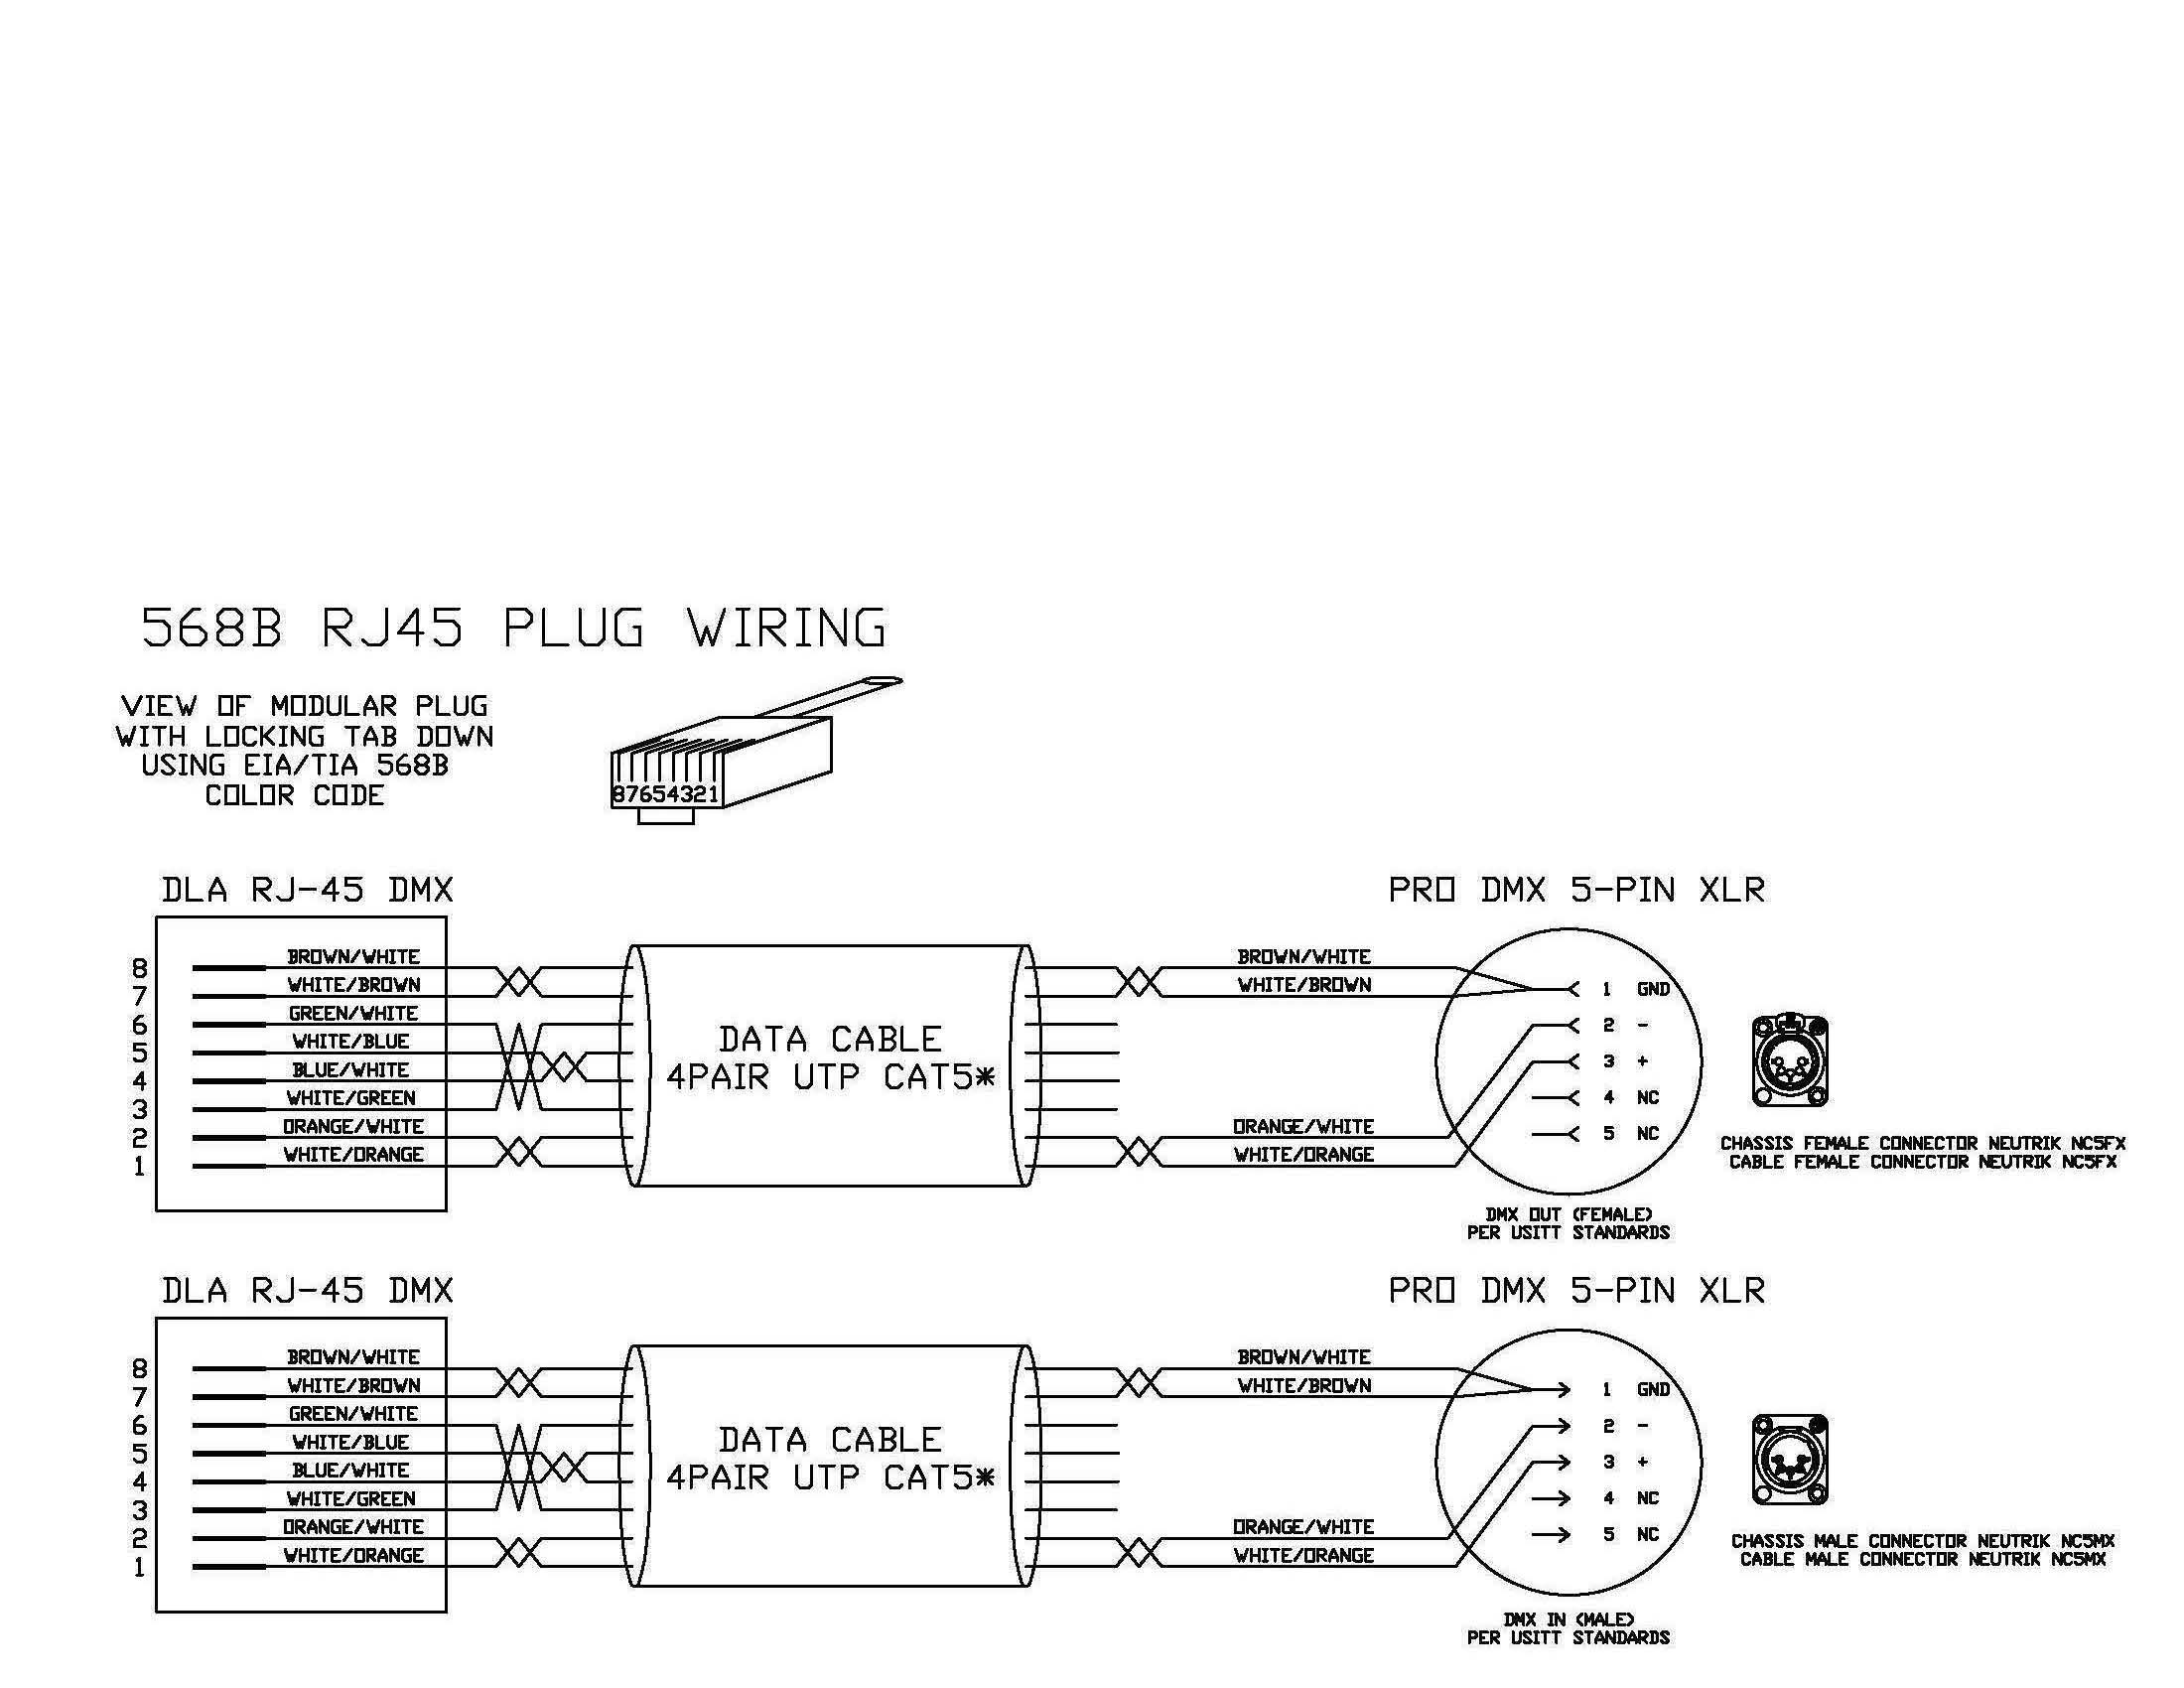 Cat 6 Wiring Diagram Wikipedia Connector B 5 Cable Rj45 All Diagramdiylightanimation Com Wiki Images E E1 Dla Wi